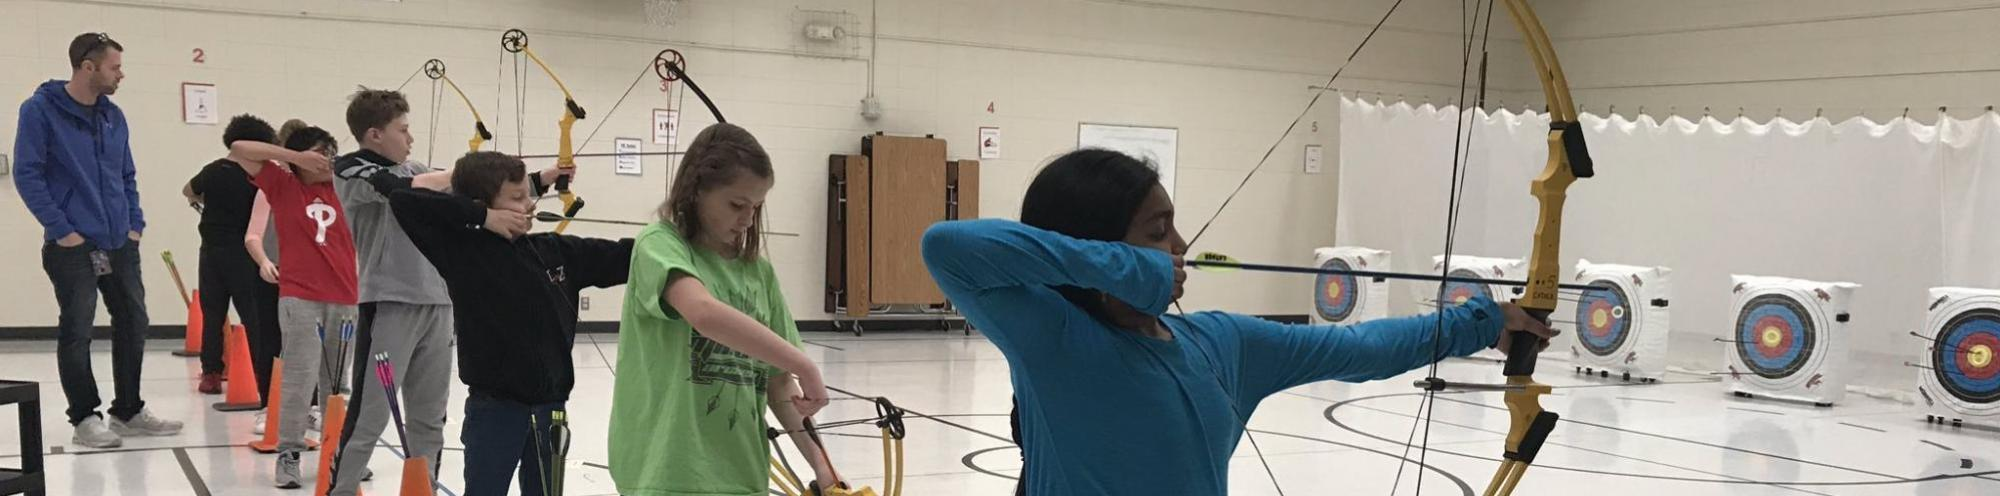 Cather Archery Club Practice